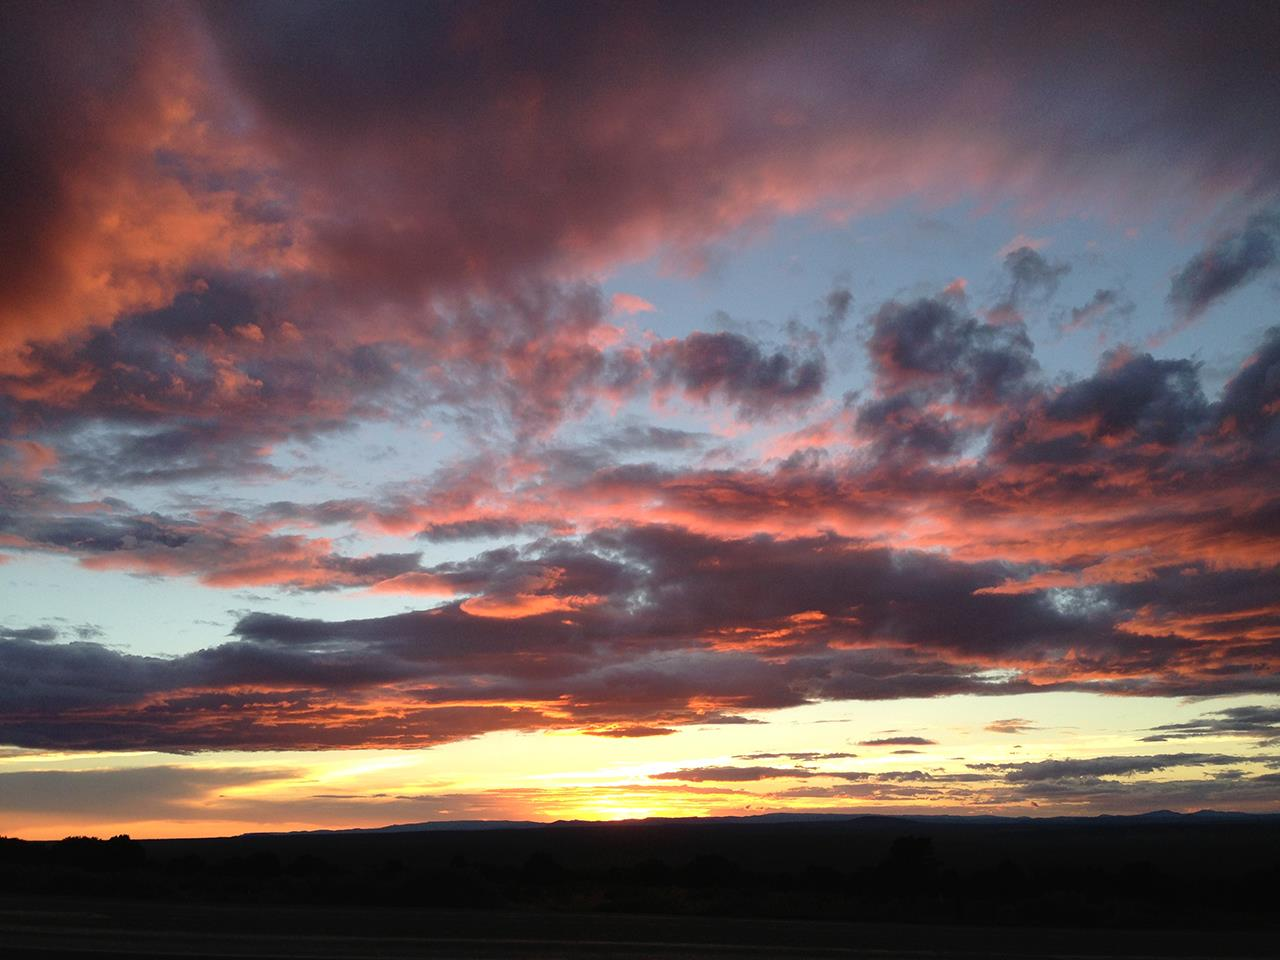 #Taos neighborhoods #Taos Valley sunset views #Taos #New Mexico